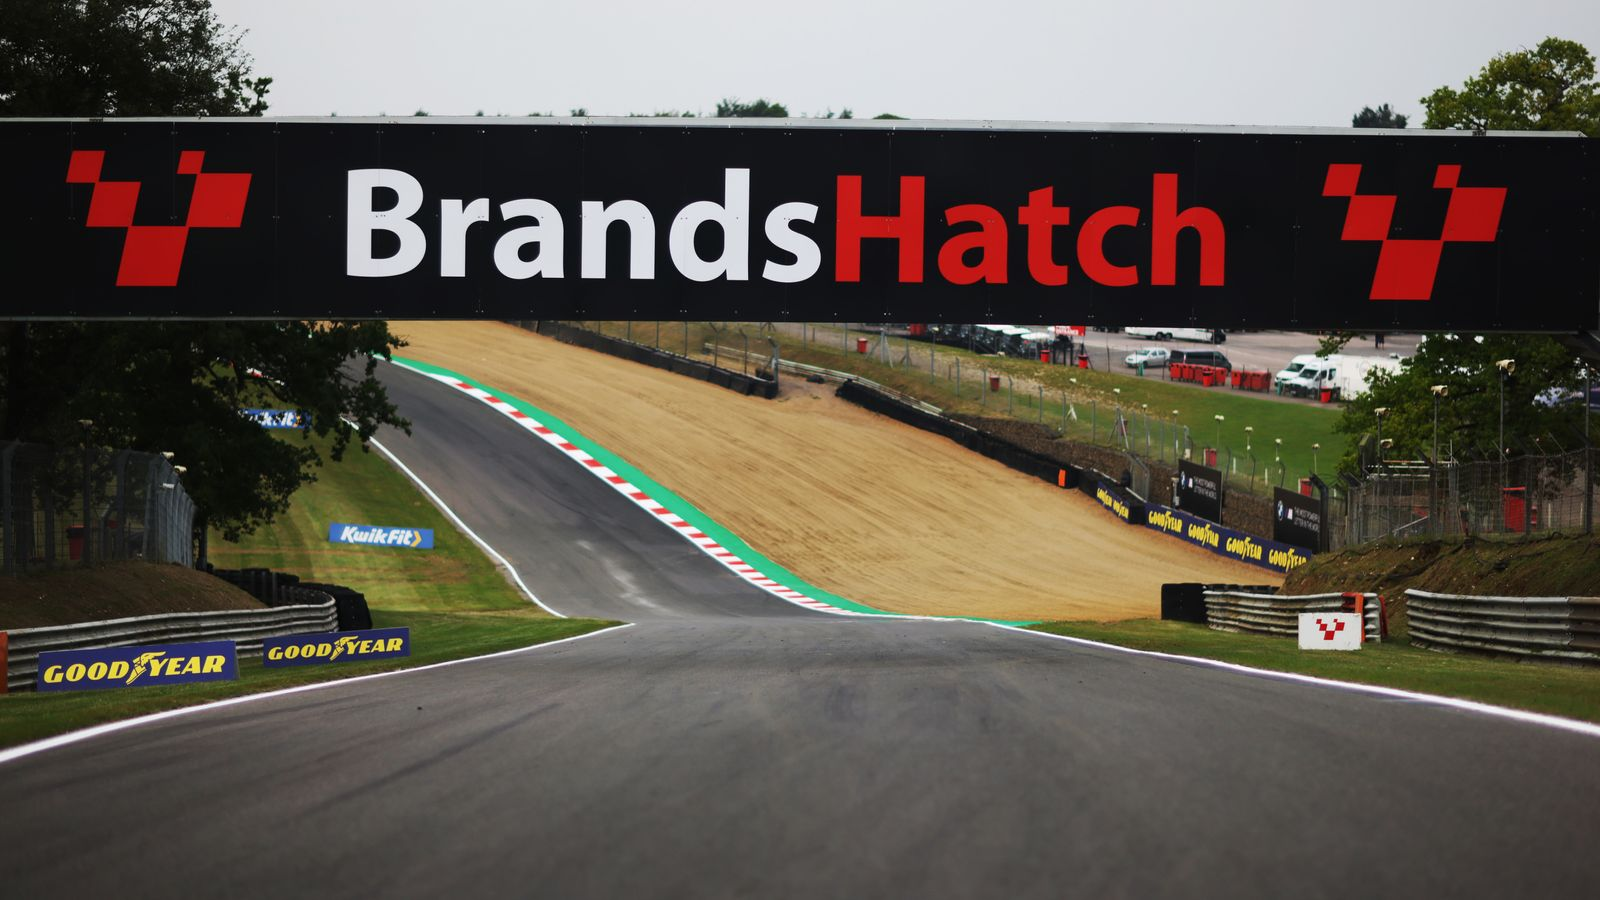 Formula 1 drivers and teams pay respects after volunteer marshal dies in Brands Hatch crash